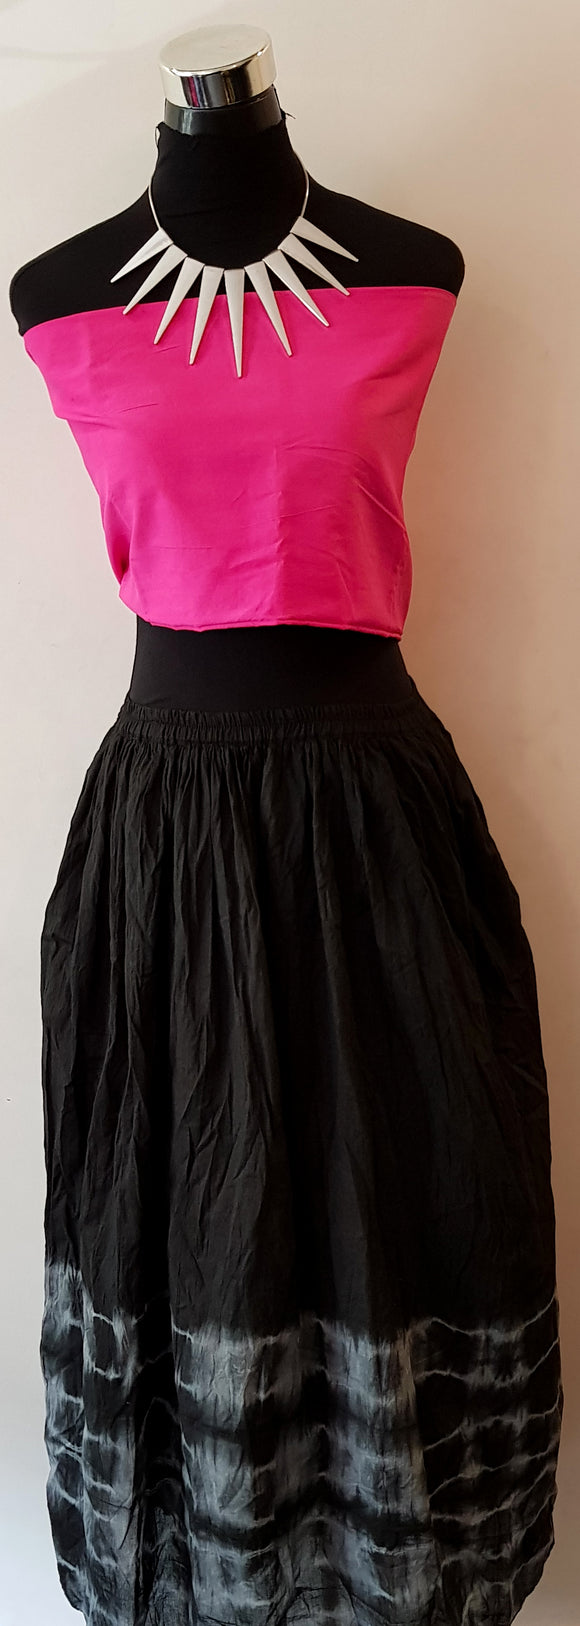 Shibori Black Skirt (BS)